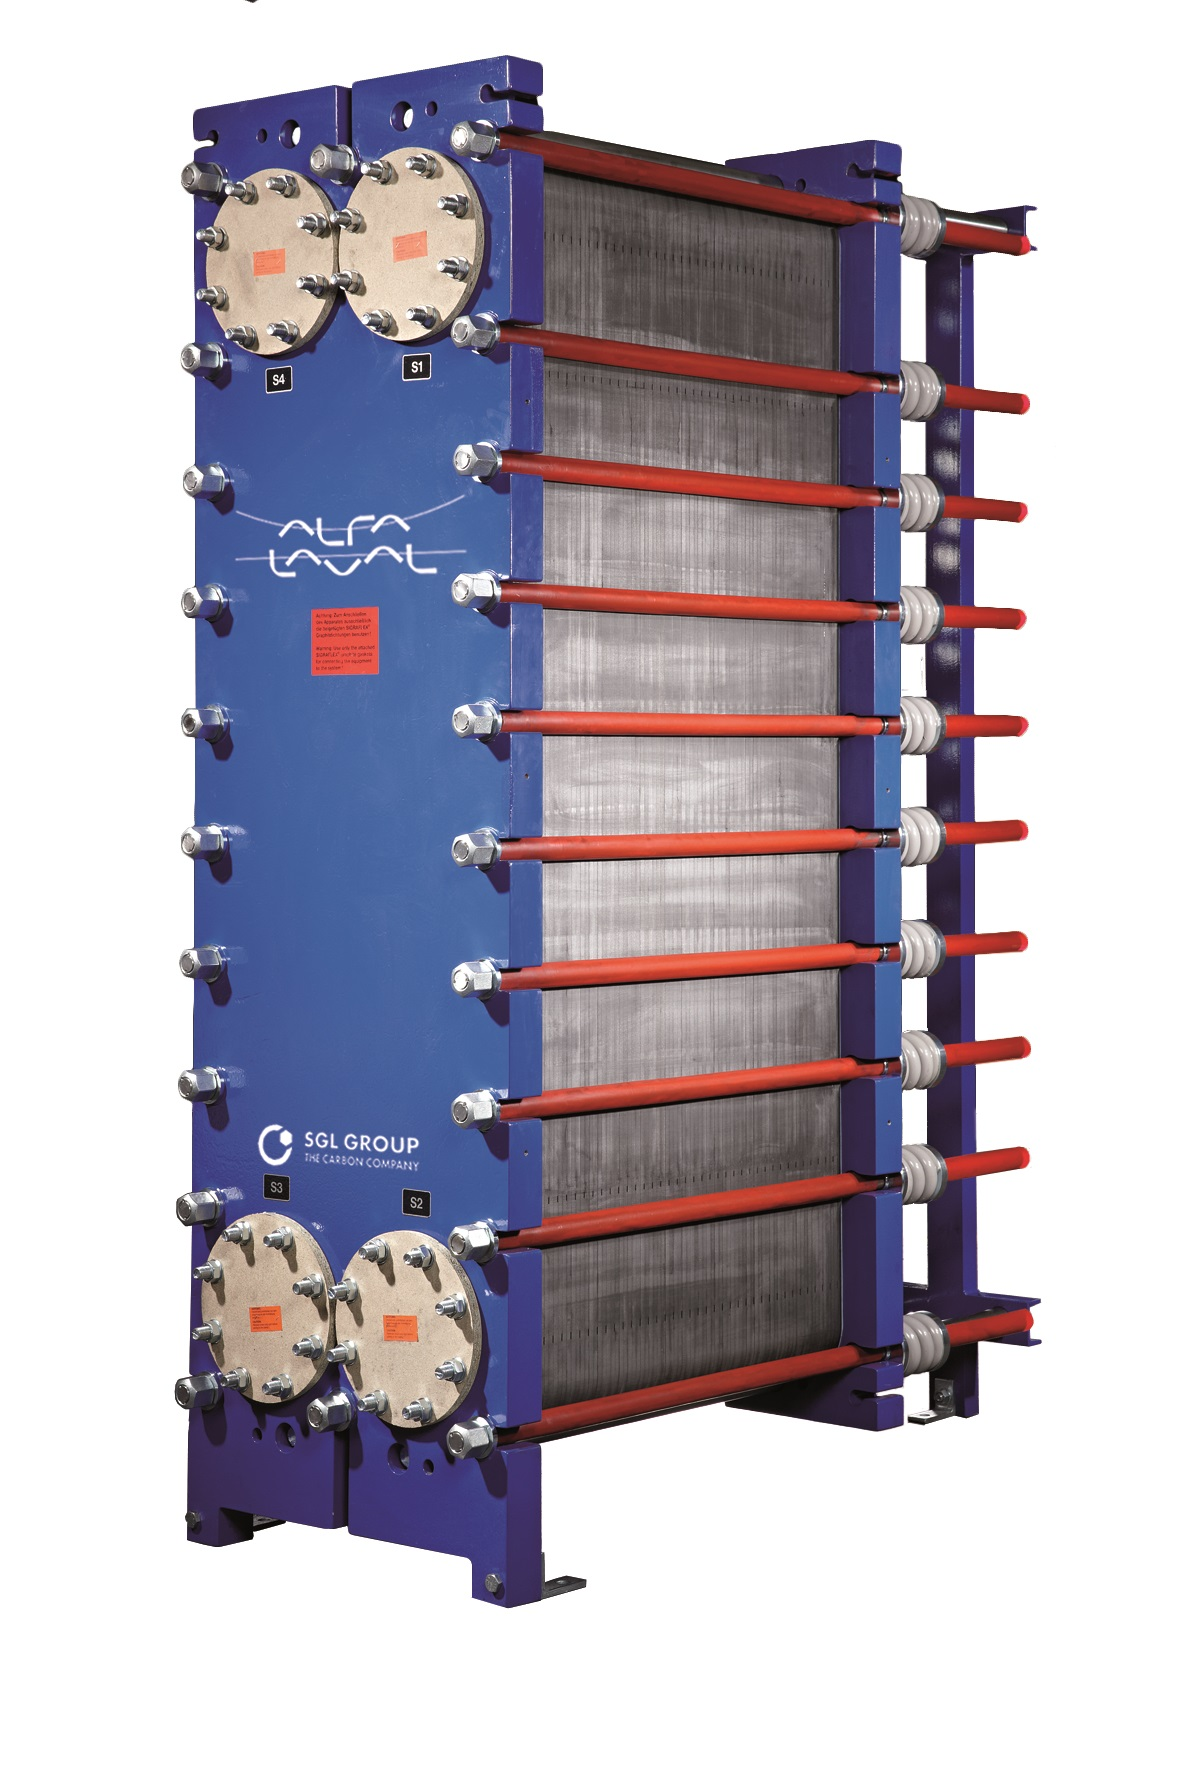 heat exchangers essay Heat exchanger analysis  state temperature distribution along heat exchangers length on comparing various fin lengths  whole essay and download the.